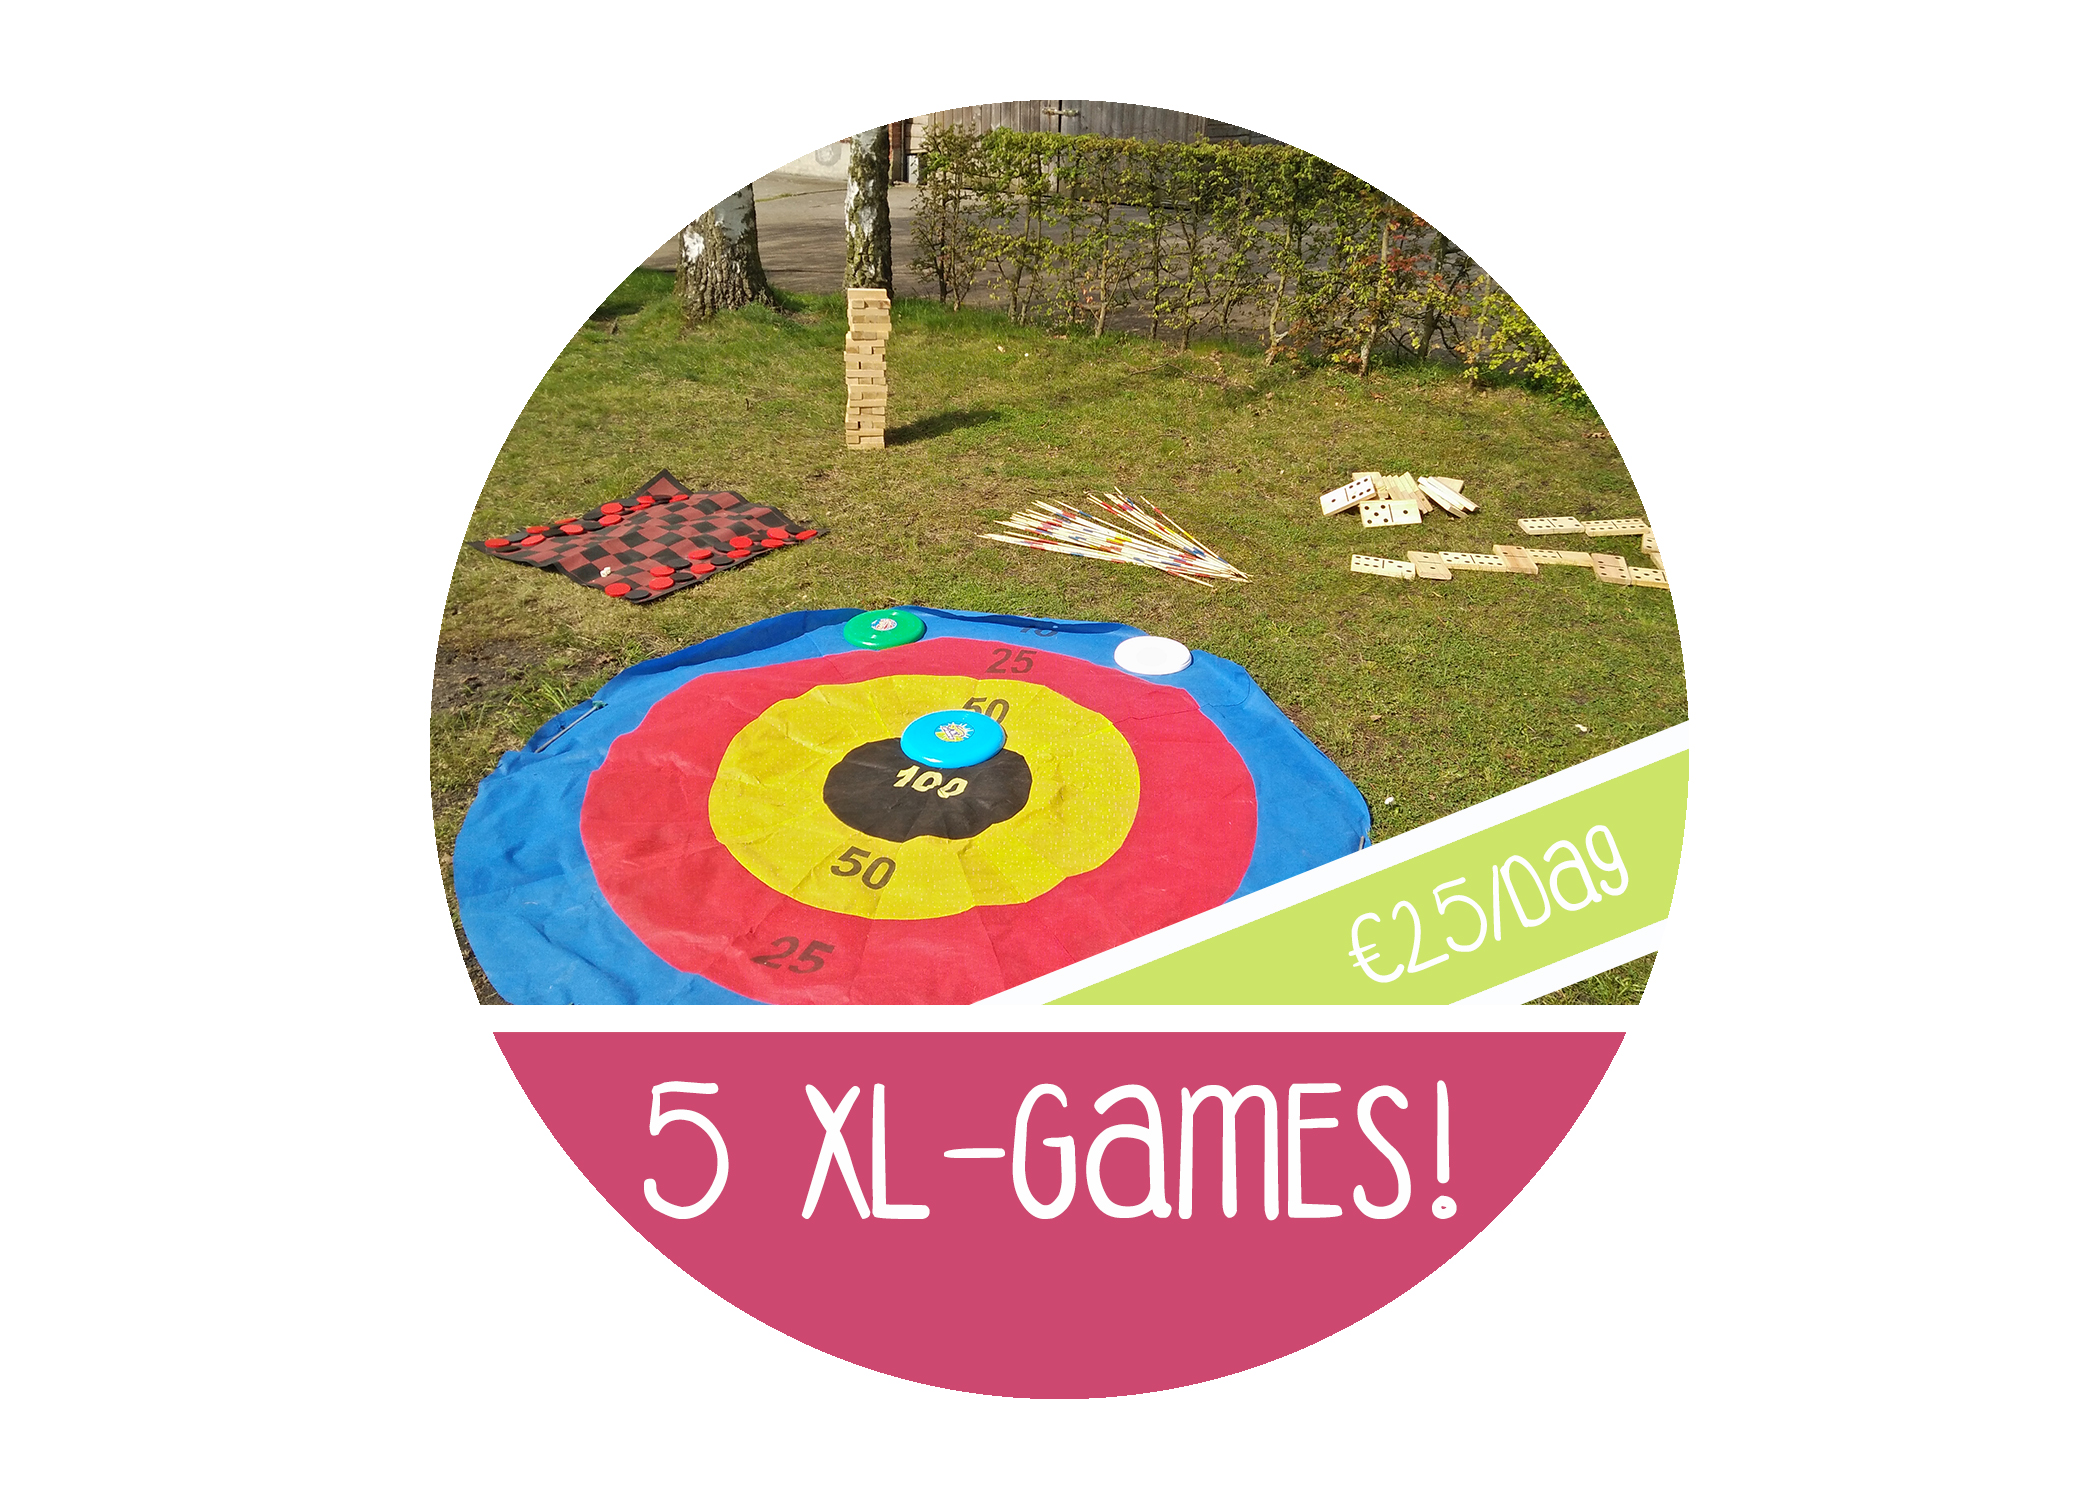 set xl games huren reuzespelen